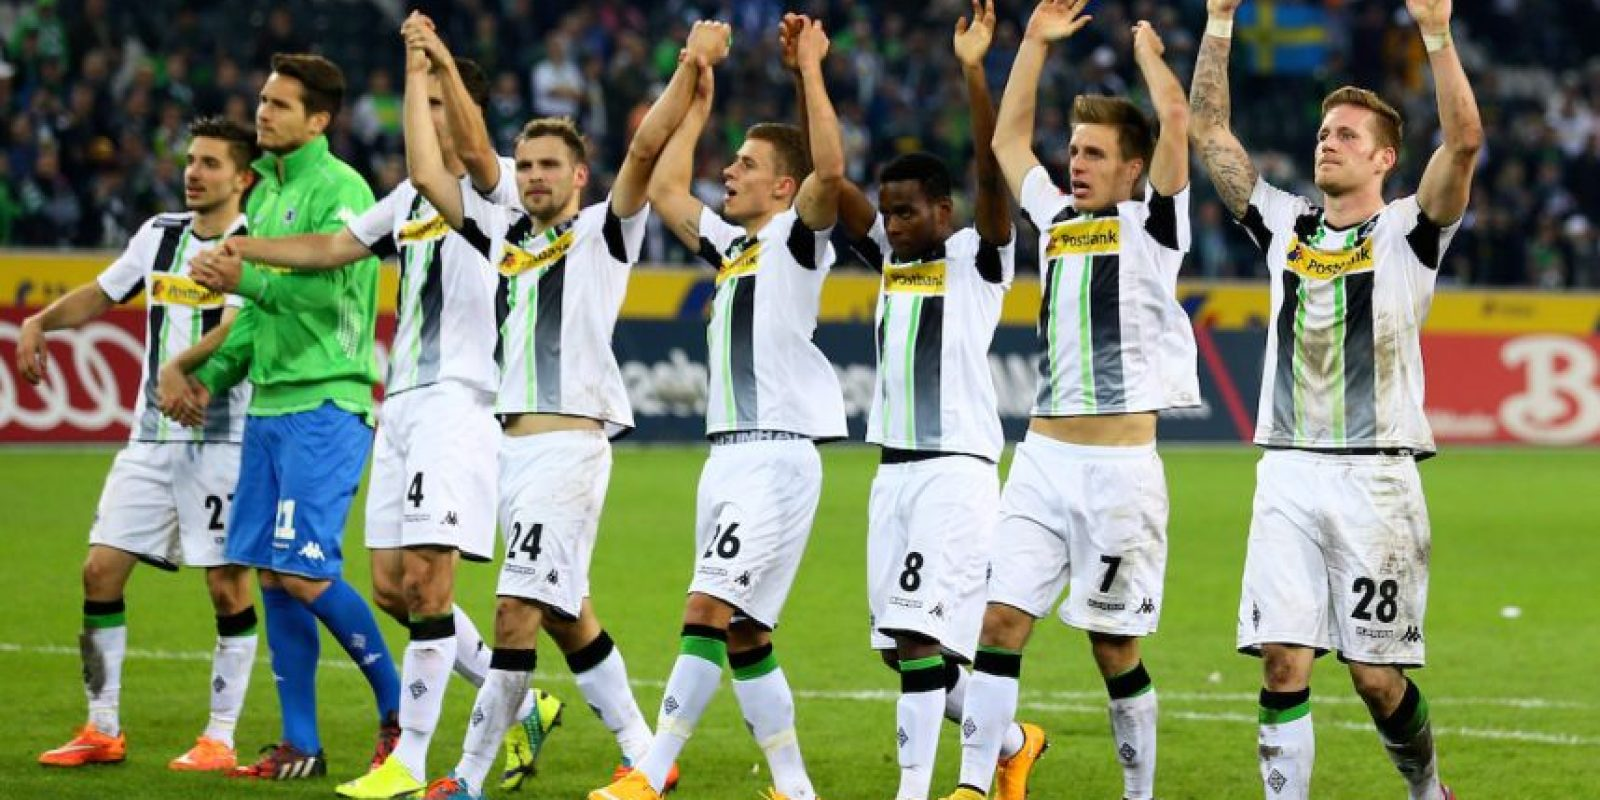 Borussia Monchengladbach (Alemania) Foto: Getty Images